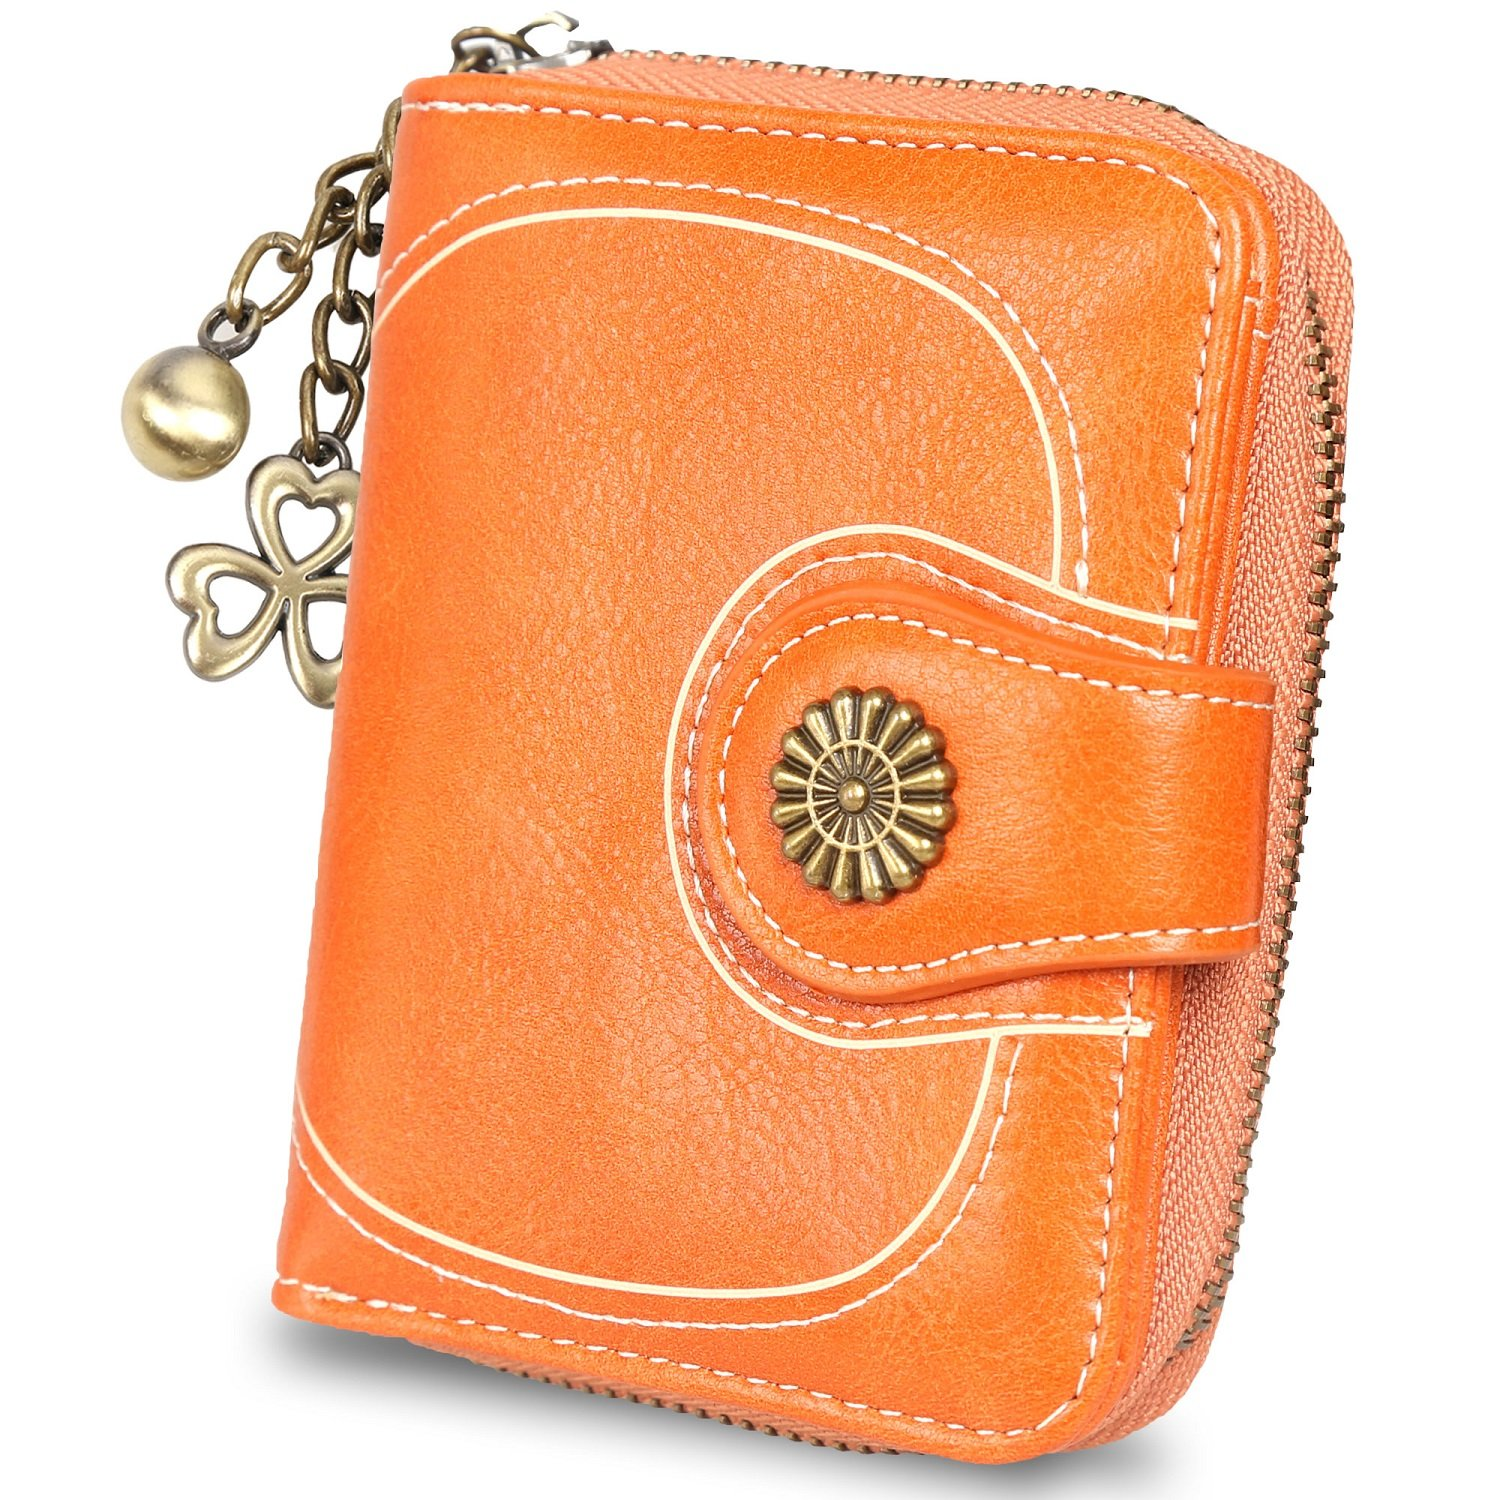 RFID Small Wallet for Women Card Holder Leather Wallets Ladies Purse ID Window